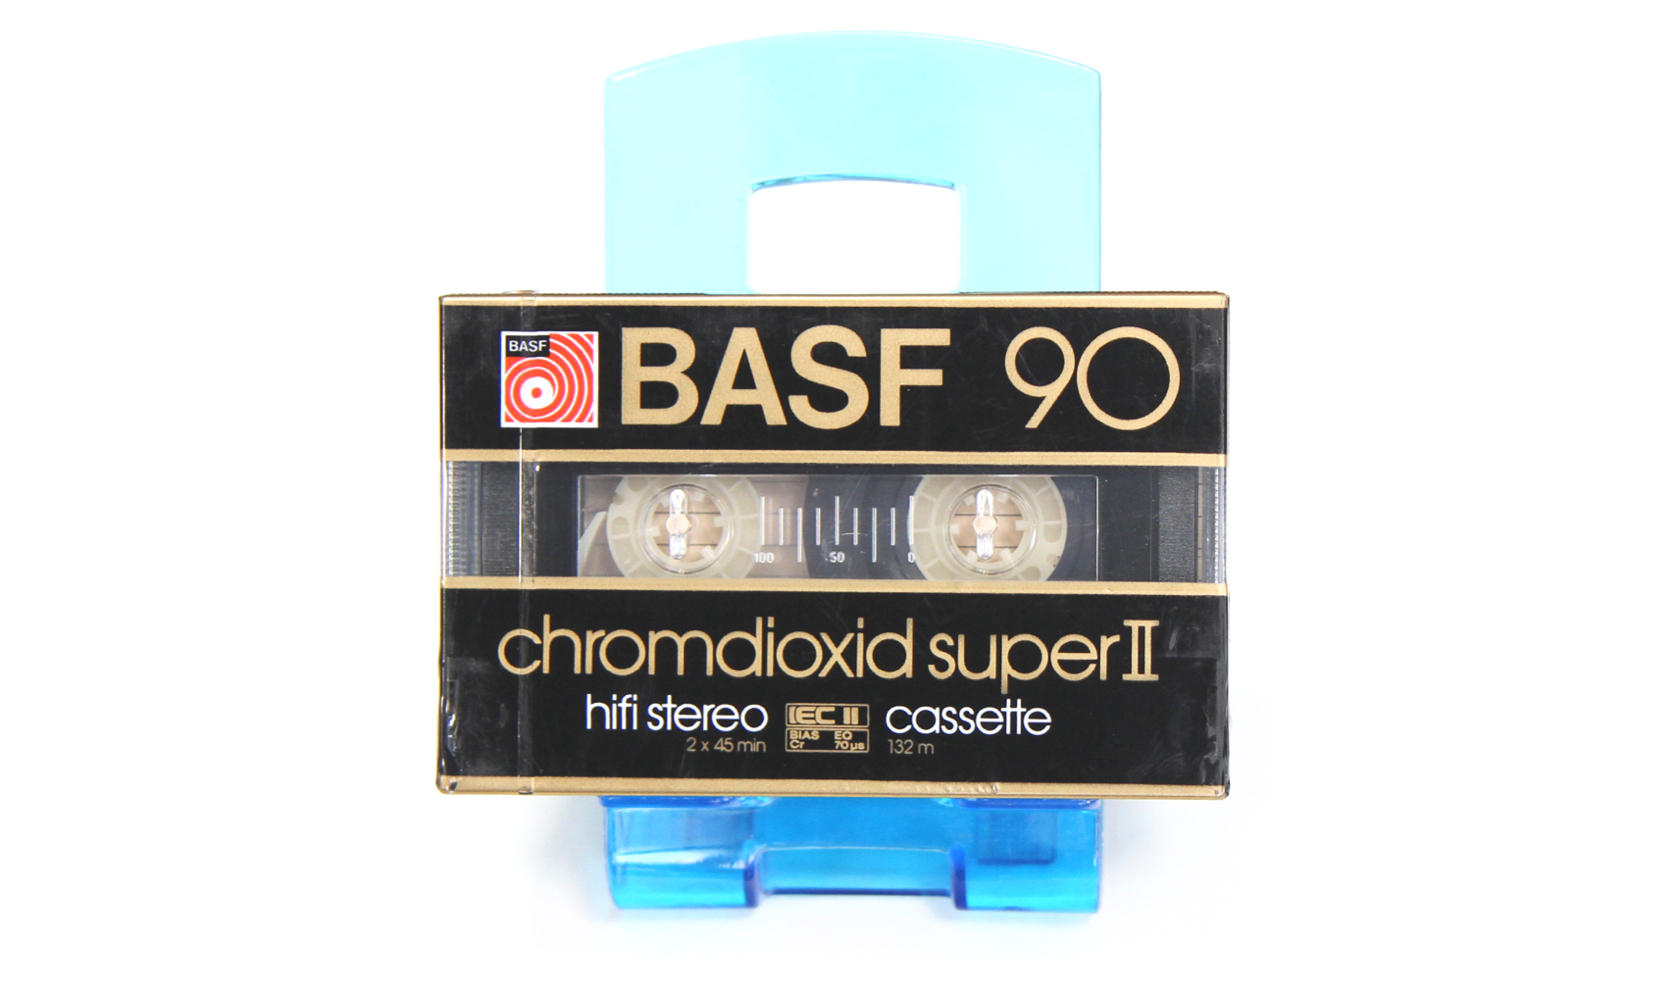 BASF CR-SII90 Chromdioxid Super II